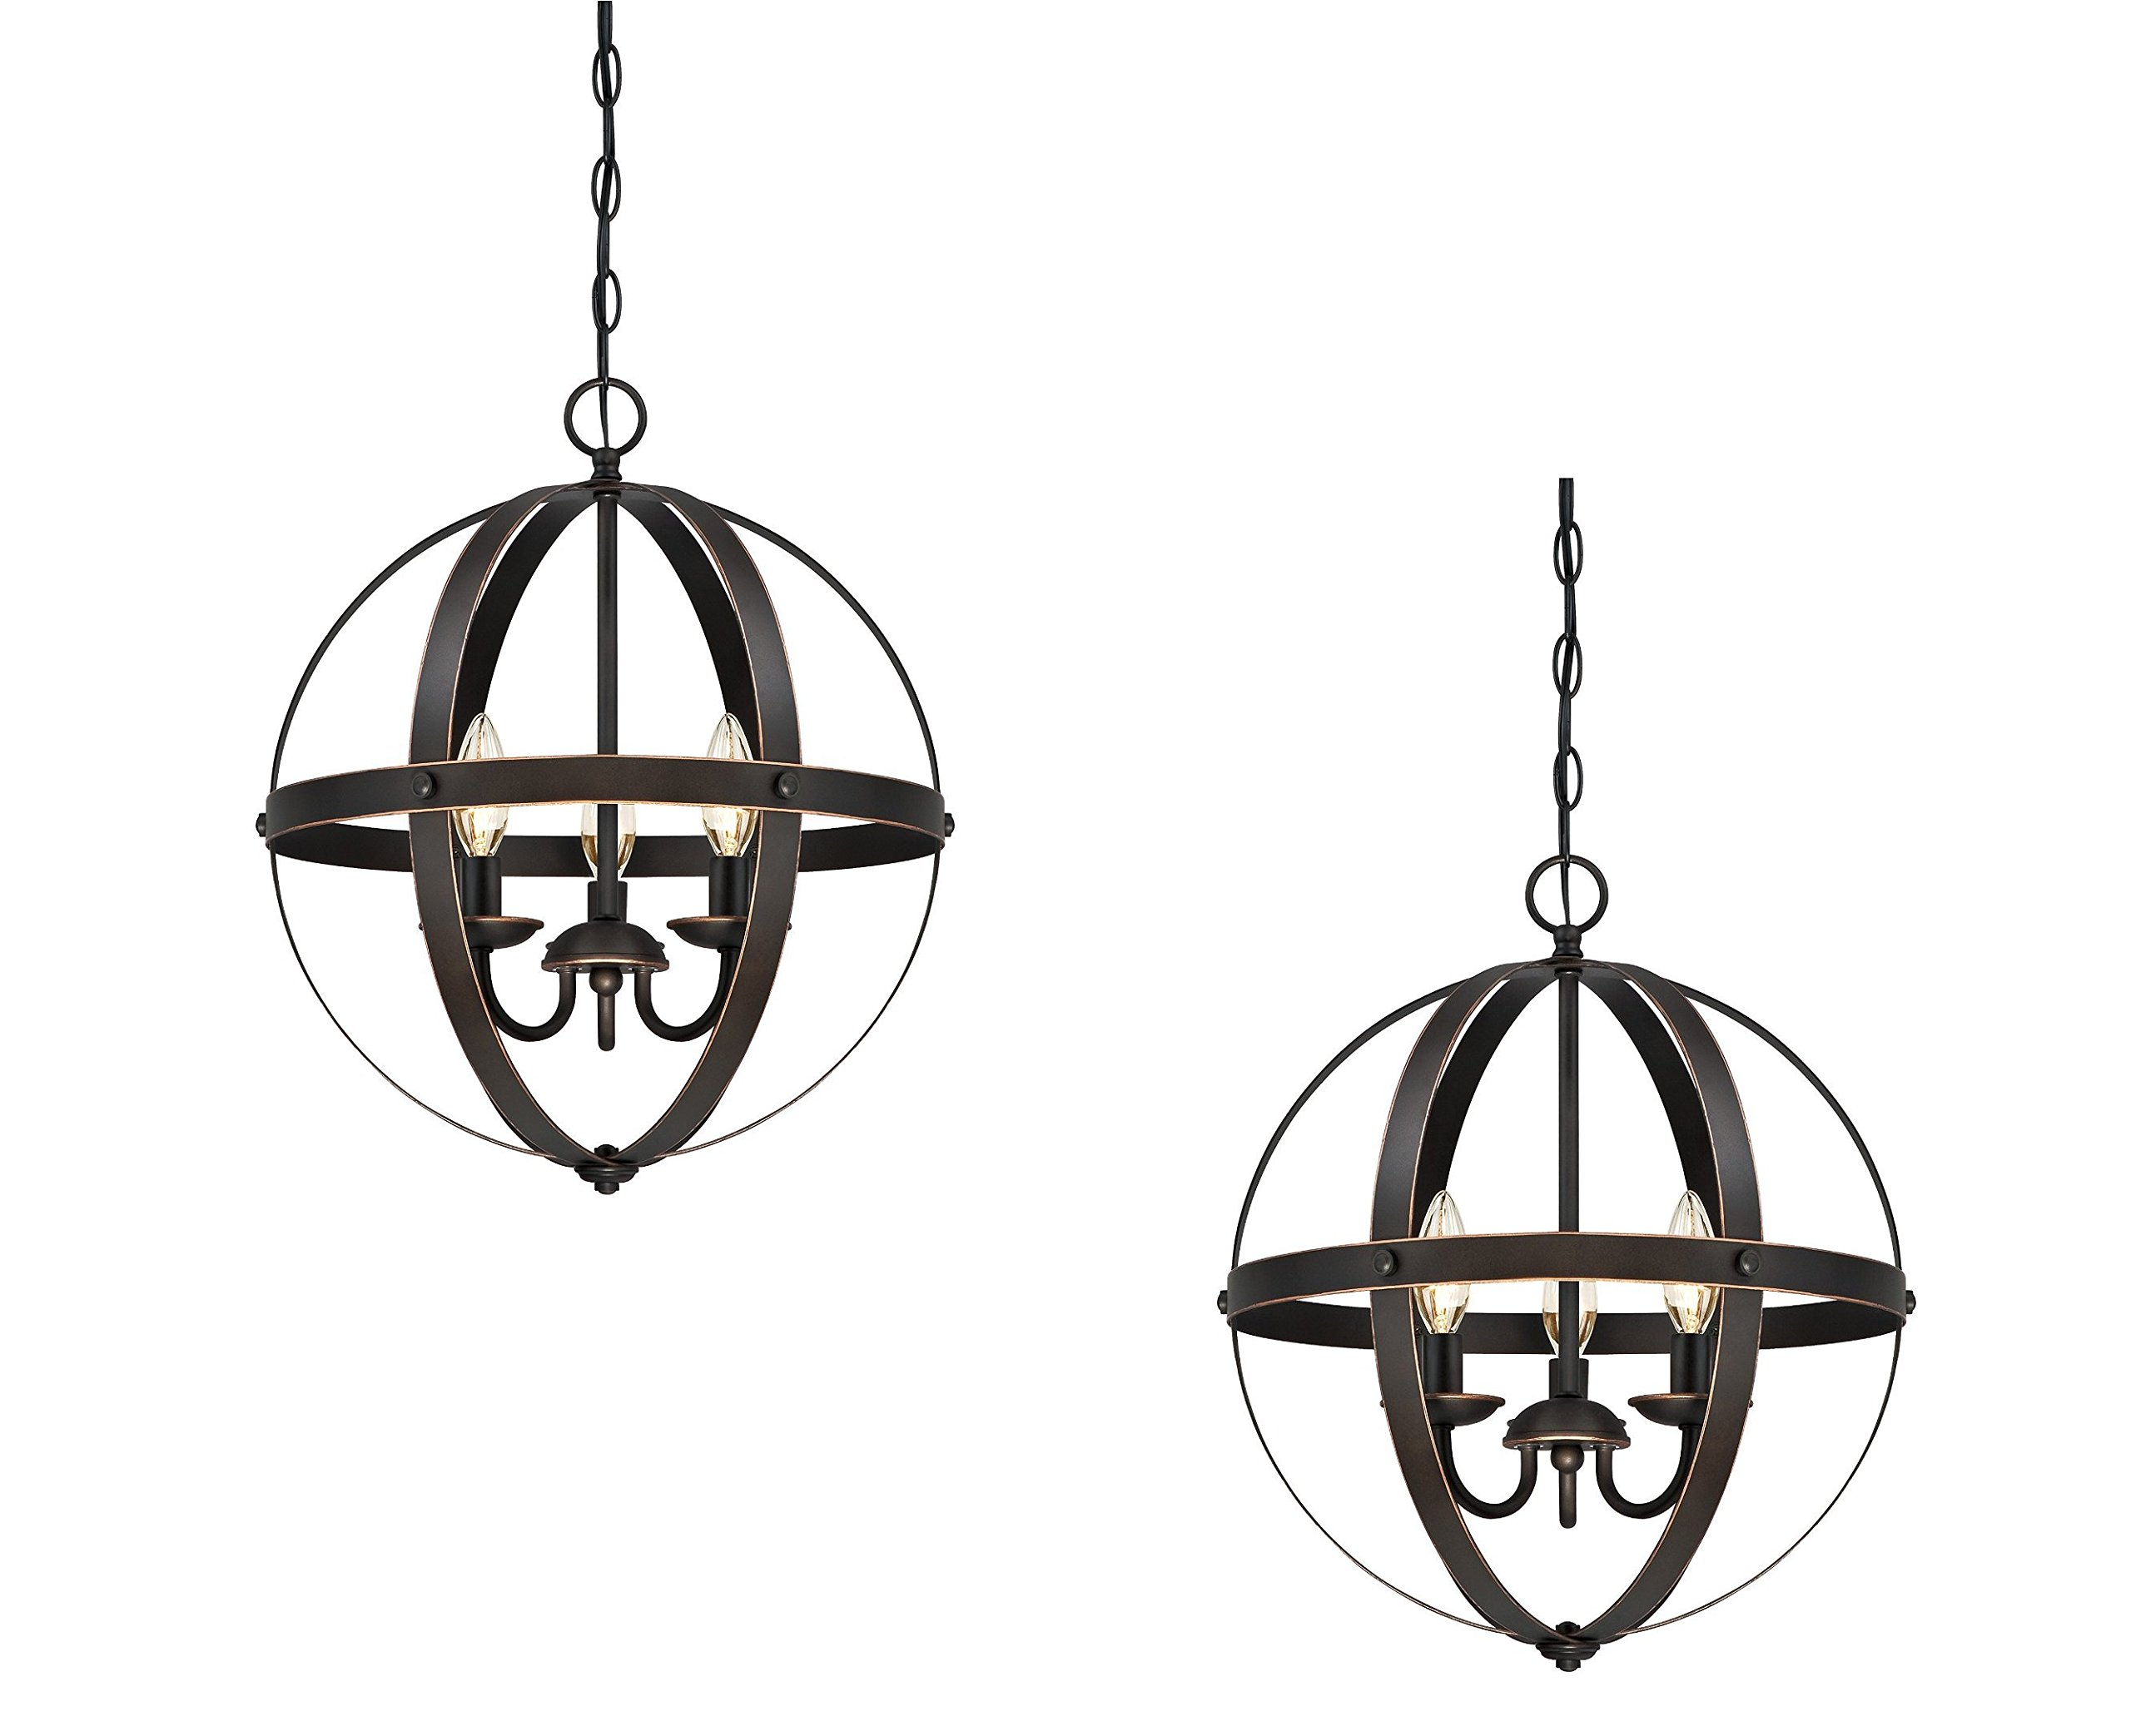 6341800 Stella Mira Three-Light Pendant, Oil Rubbed Bronze Finish with Highlights (Oil Rubbed bronze, 2-Pack) by W